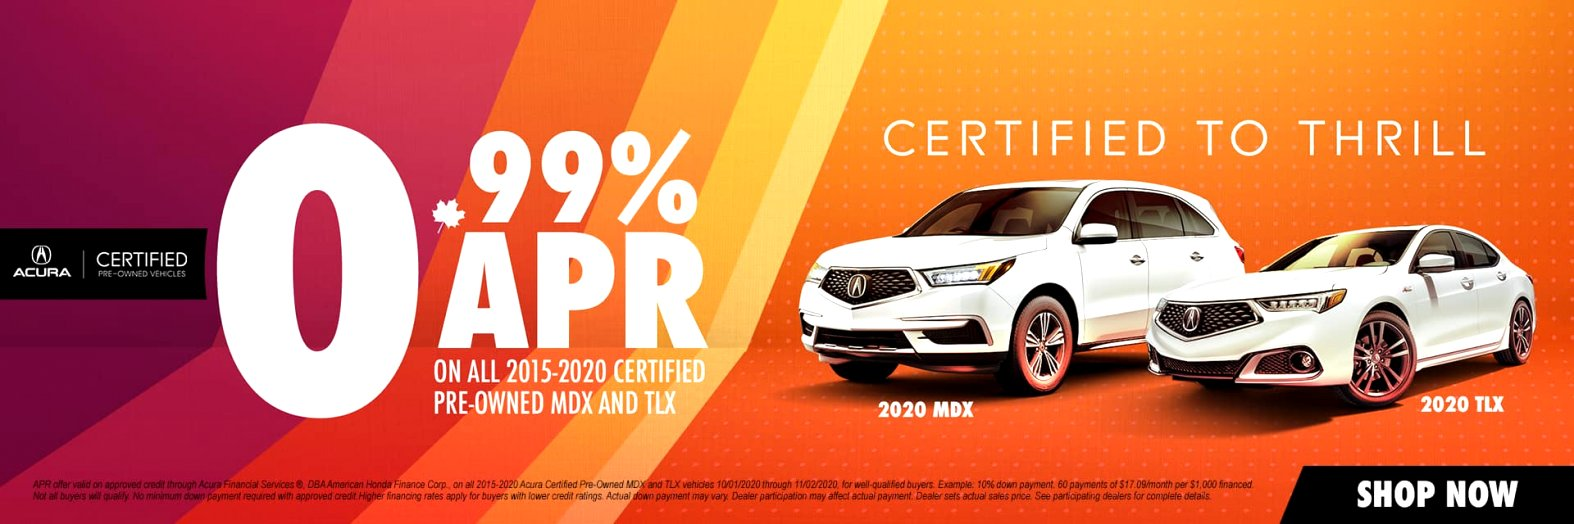 acura black friday deals 2020 Redesign